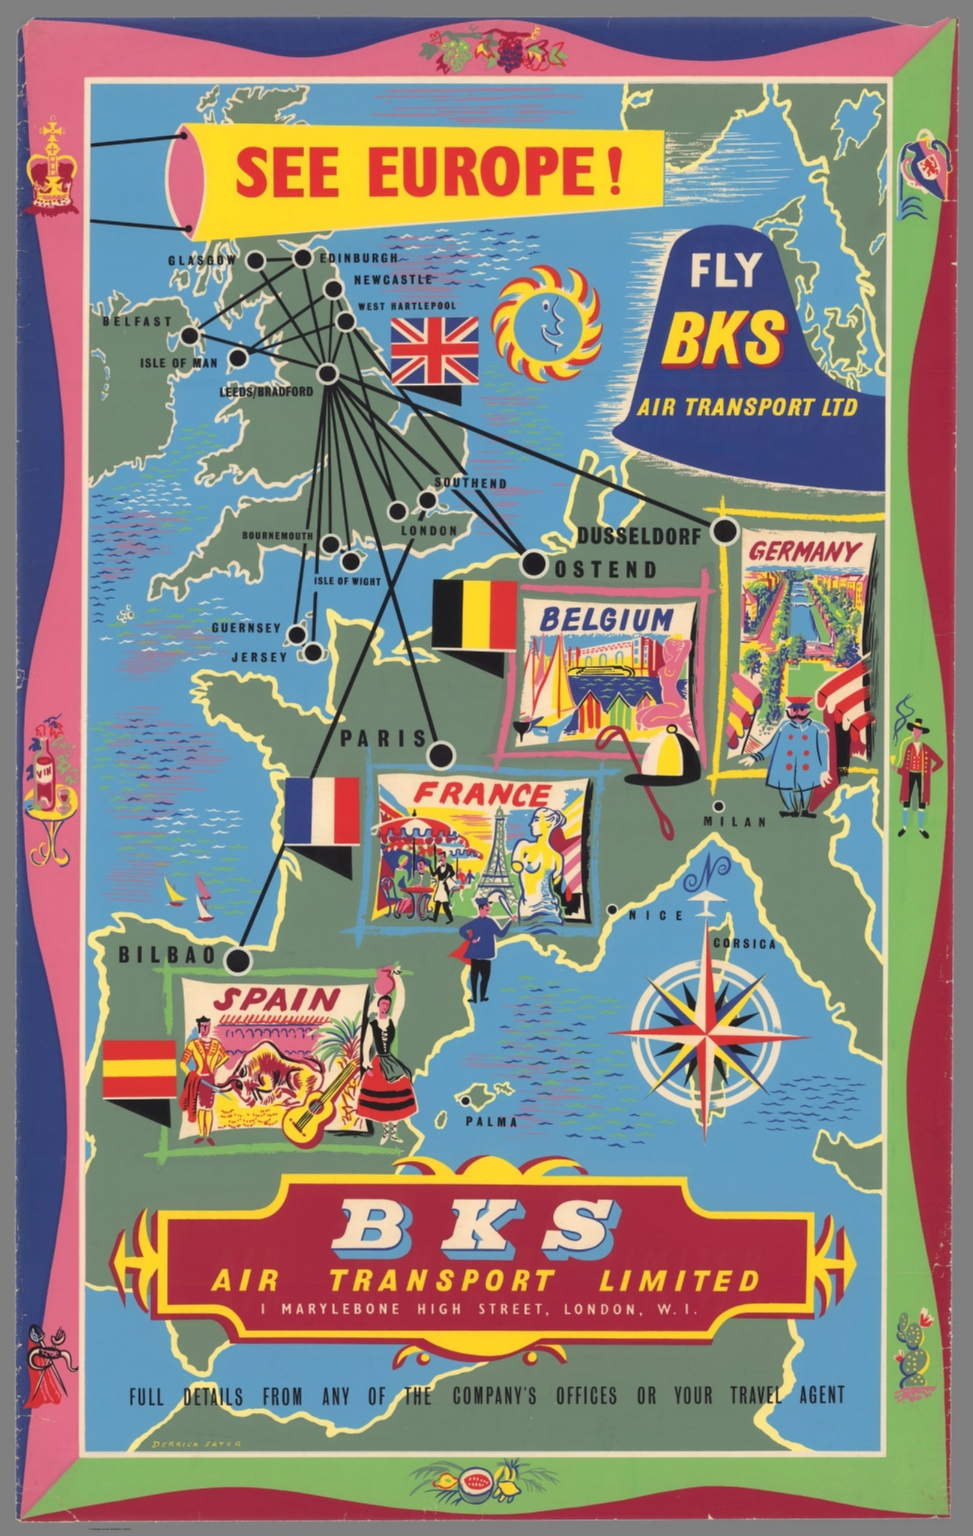 See Europe! Fly BKS Air Transport Limited